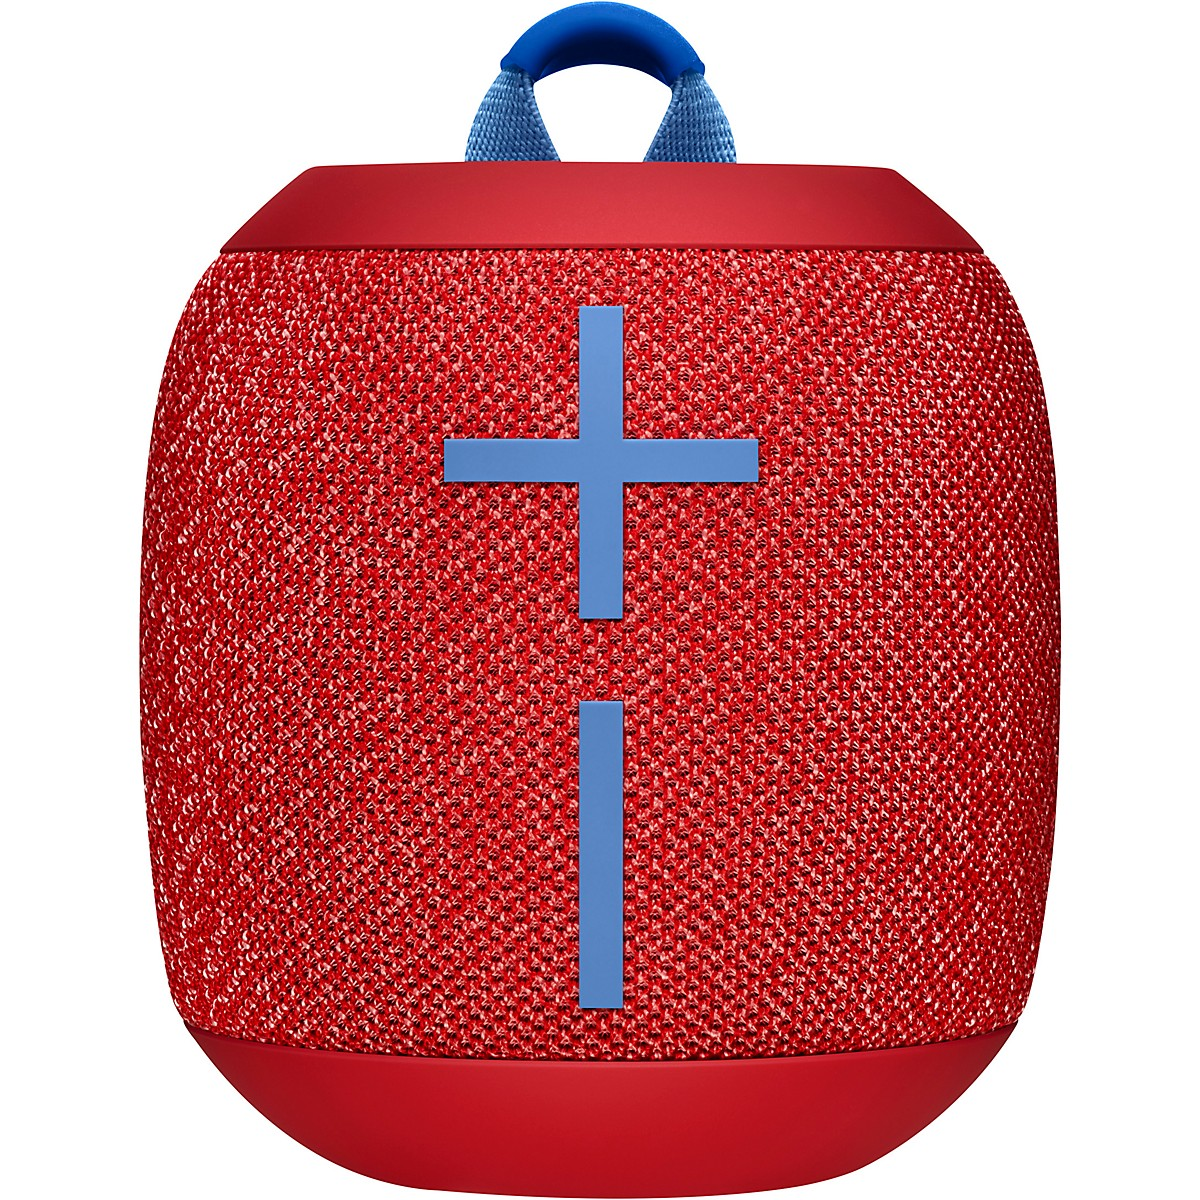 Ultimate Ears Wonderboom 2 Portable Wireless Speaker